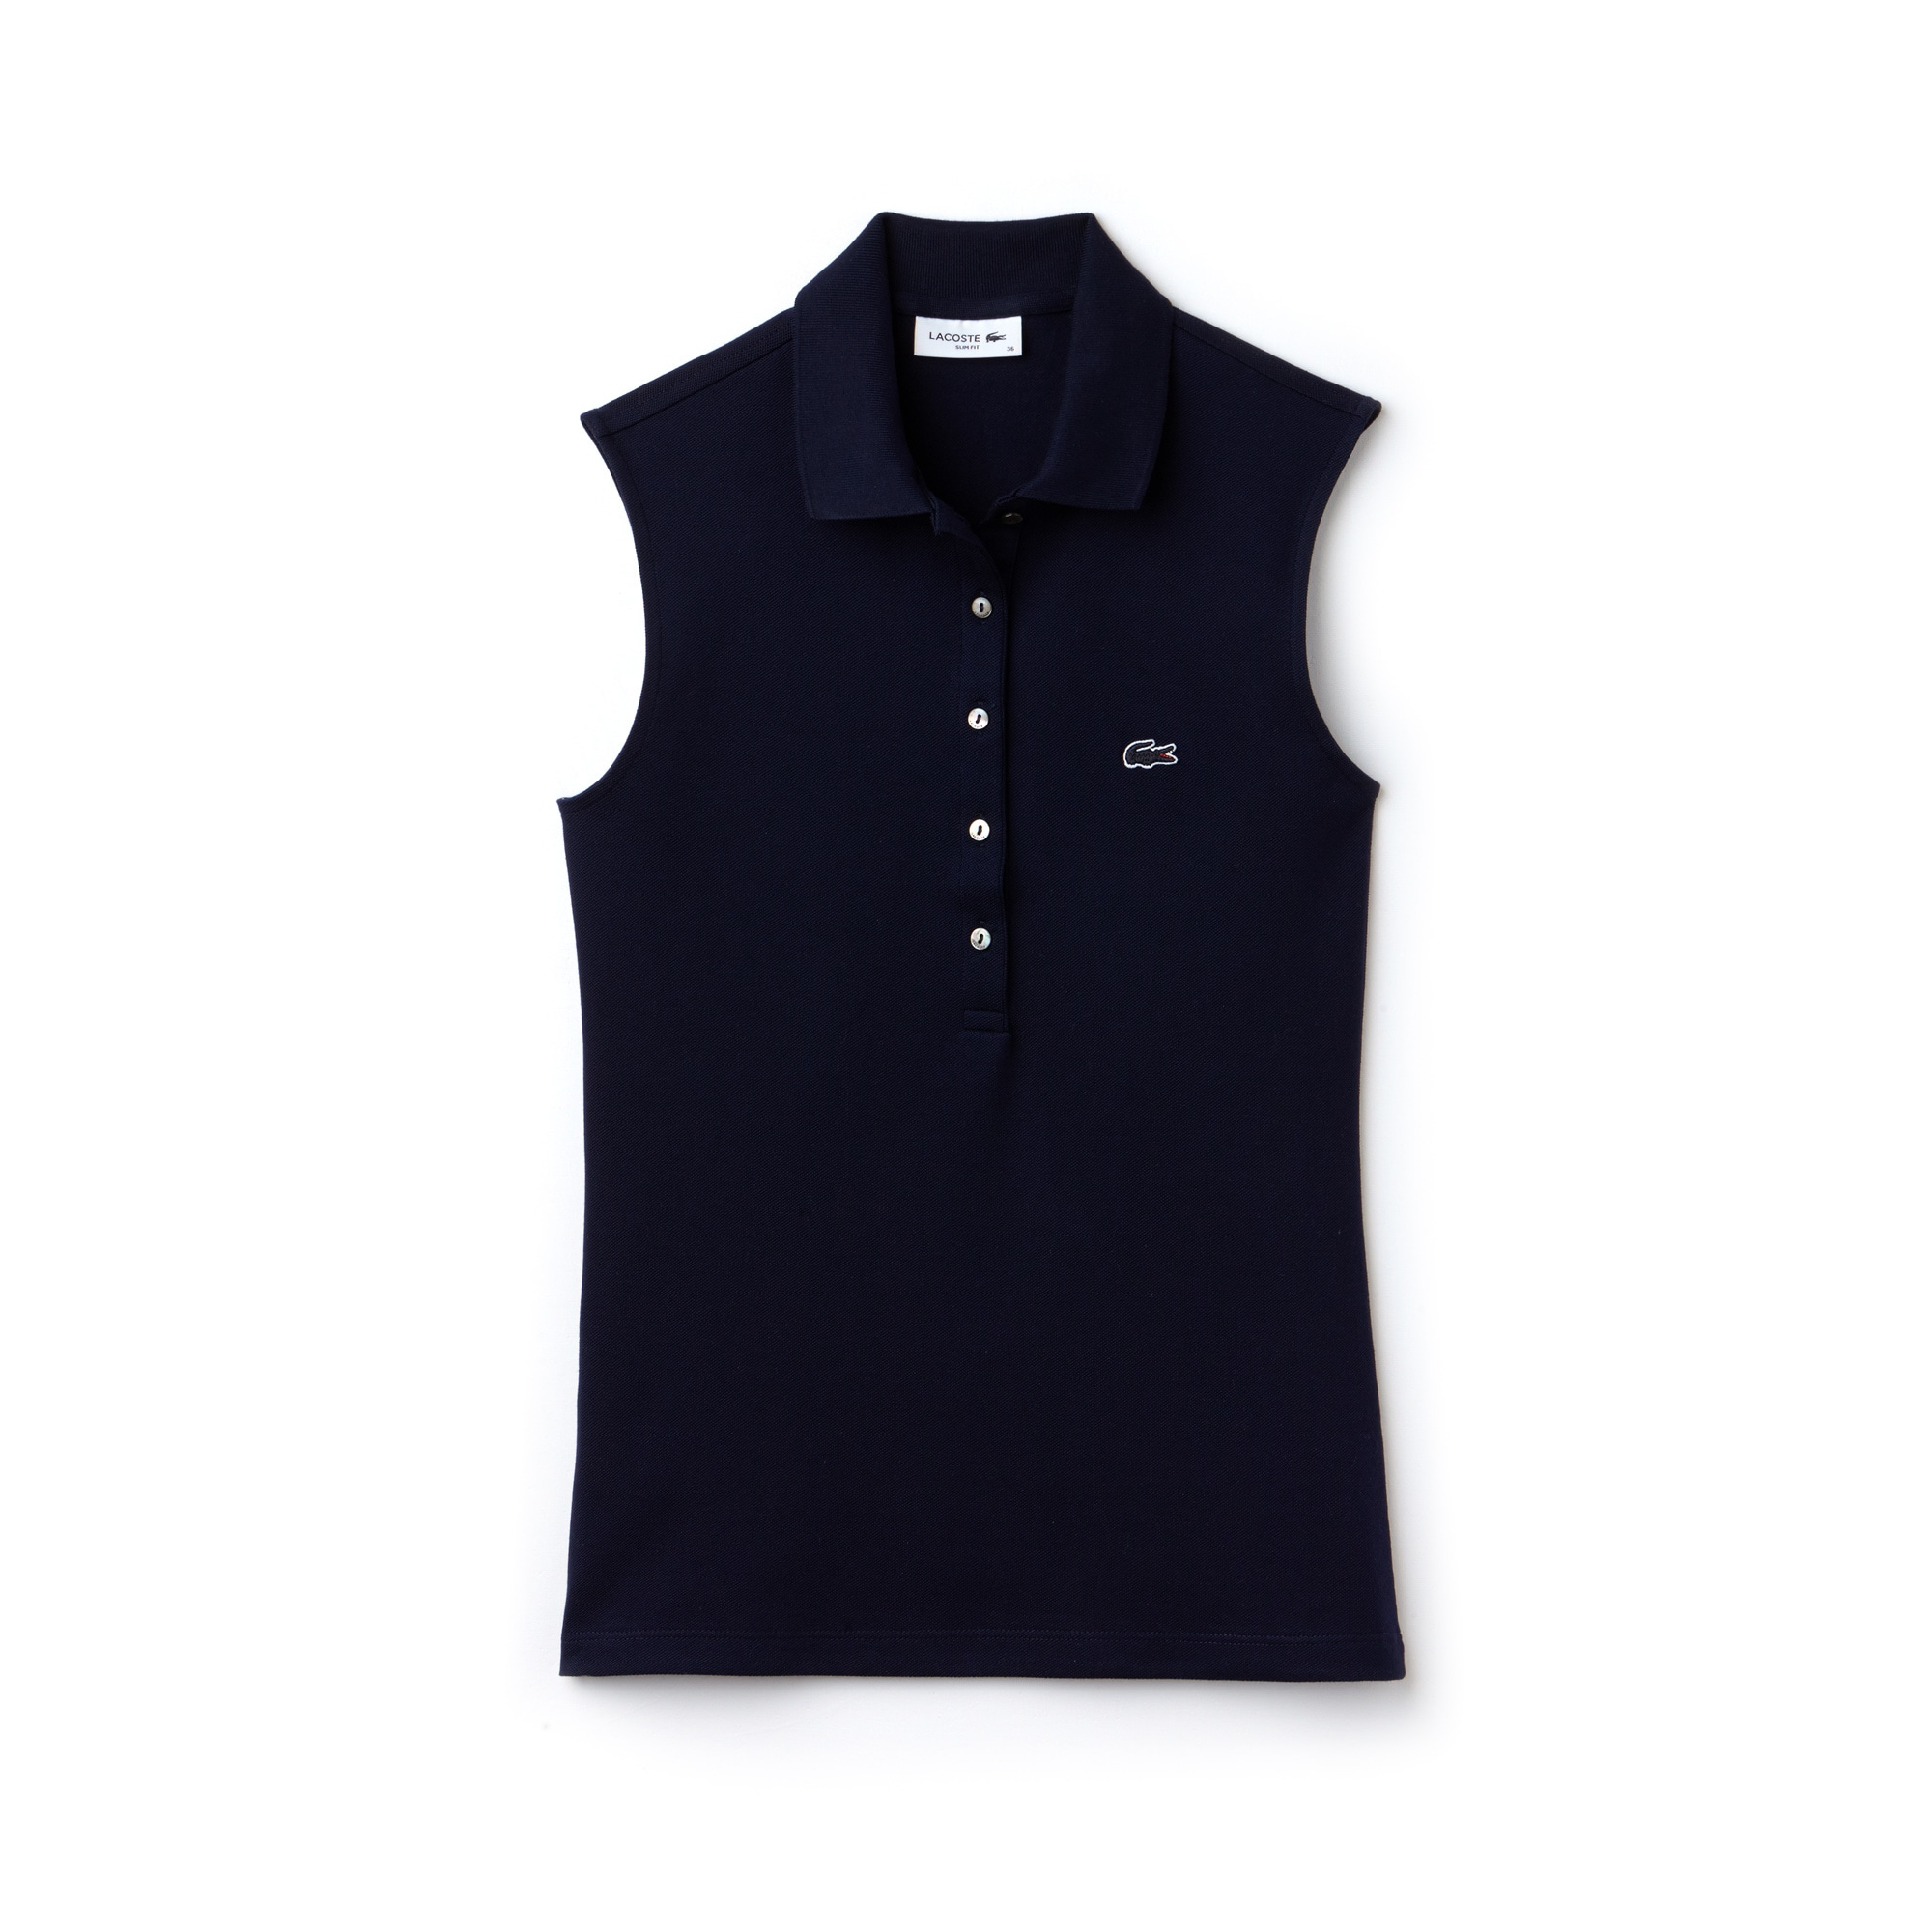 47ccdfe906a6e3 ... Women s Lacoste Slim Fit Stretch Mini Piqué Polo Shirt